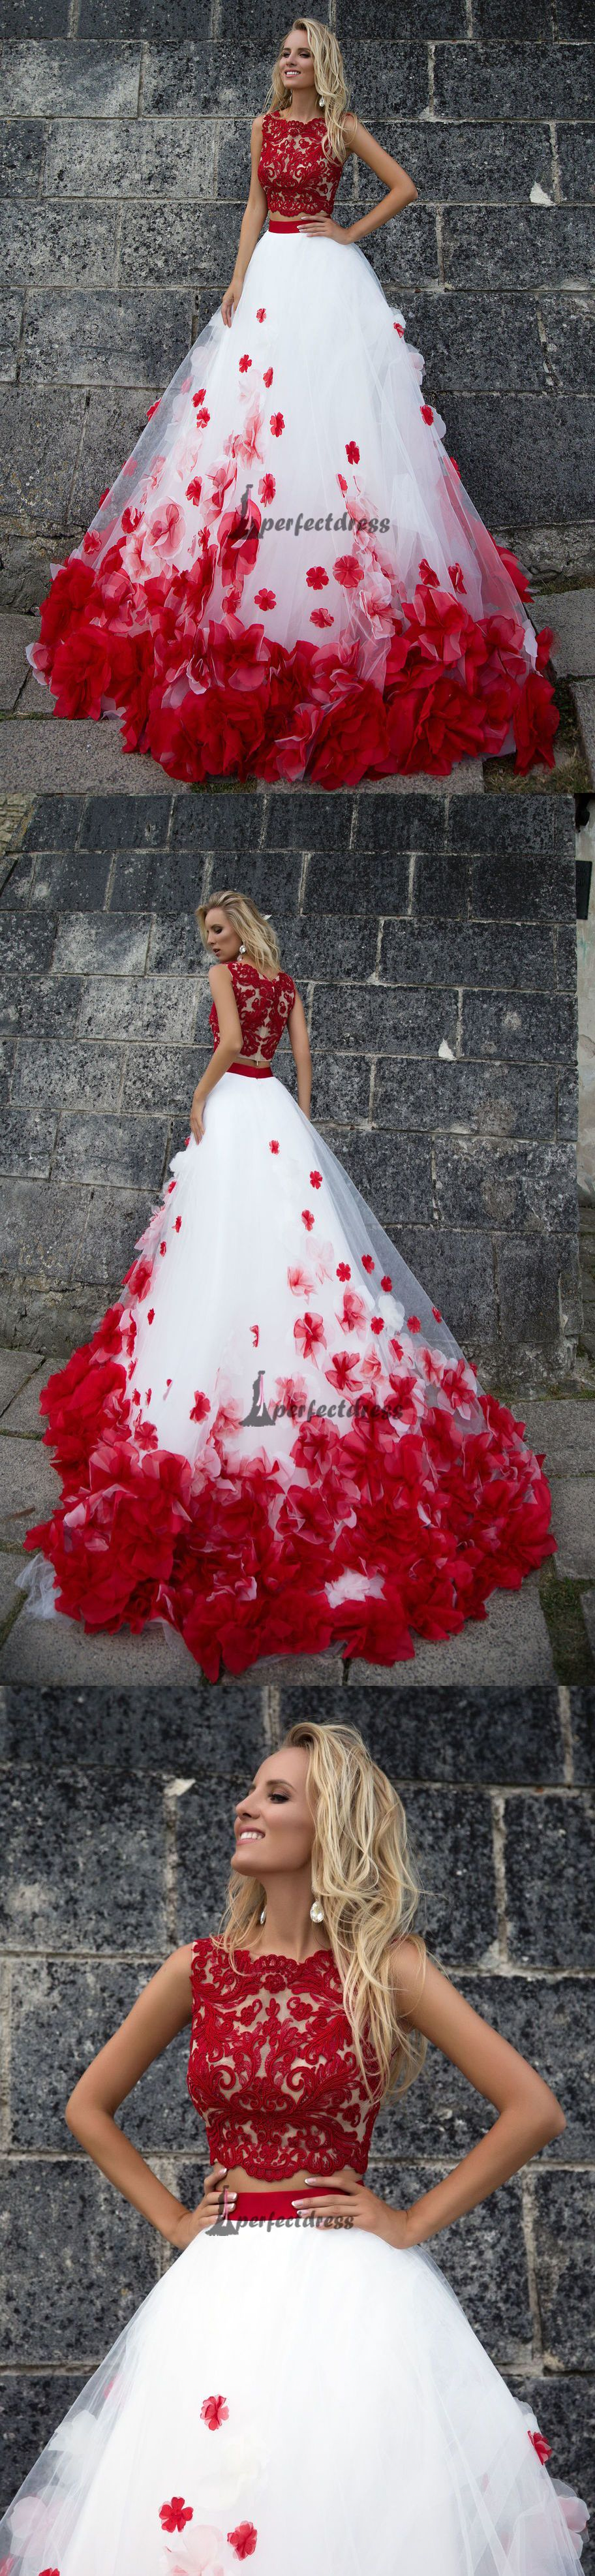 Two pieces wedding dresses white and red bridal gownpd